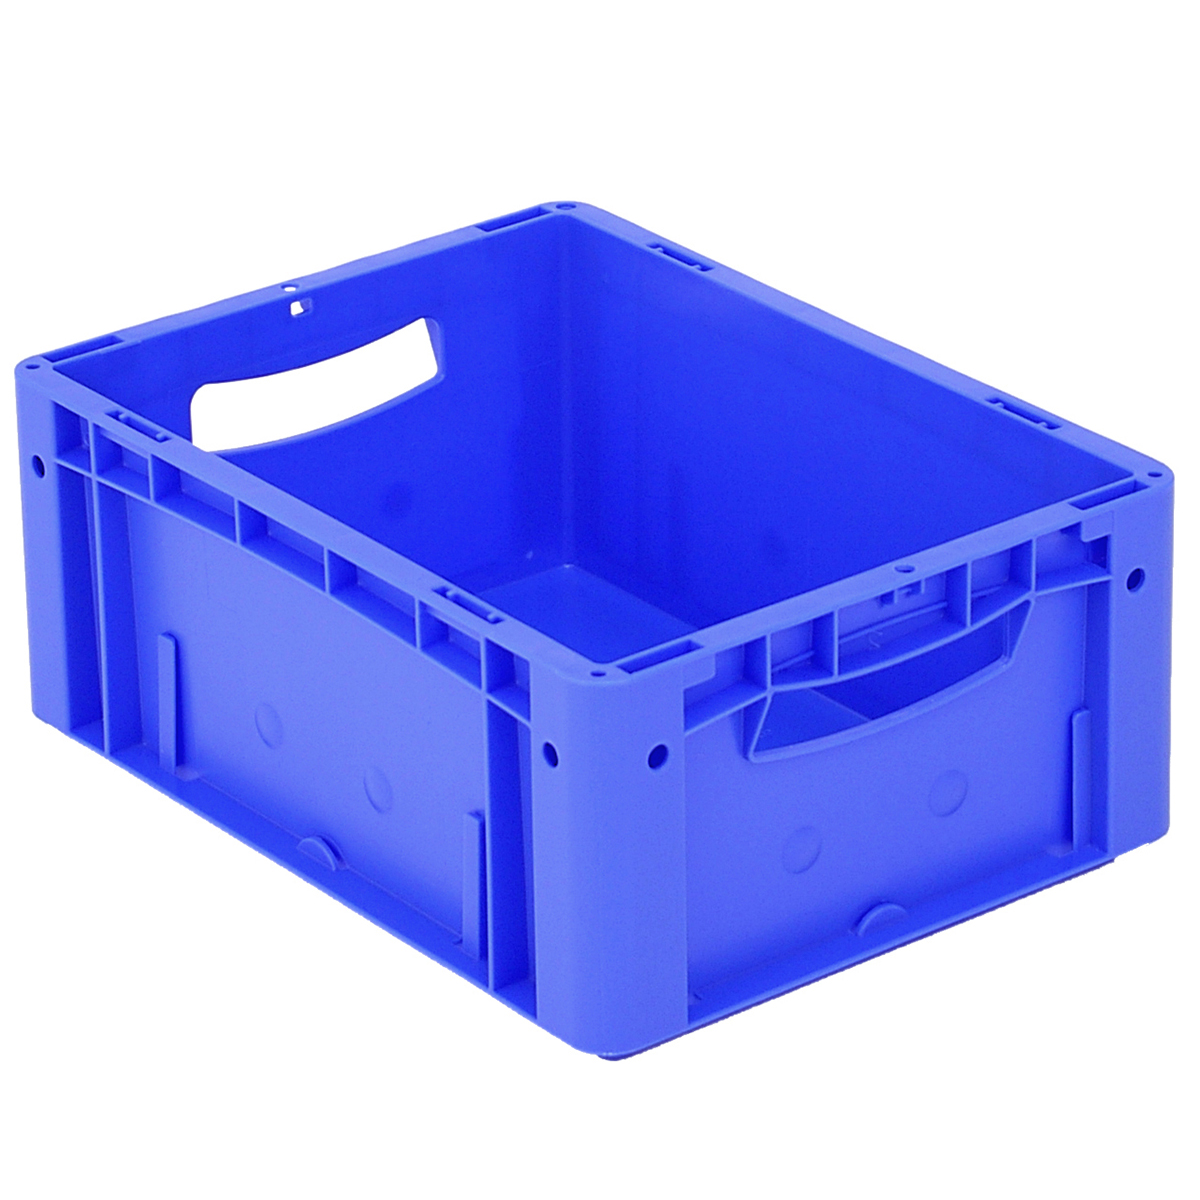 Stackable Storage Bins Stackable Plastic Storage Bins Iris 12 Quart Stack And Pull